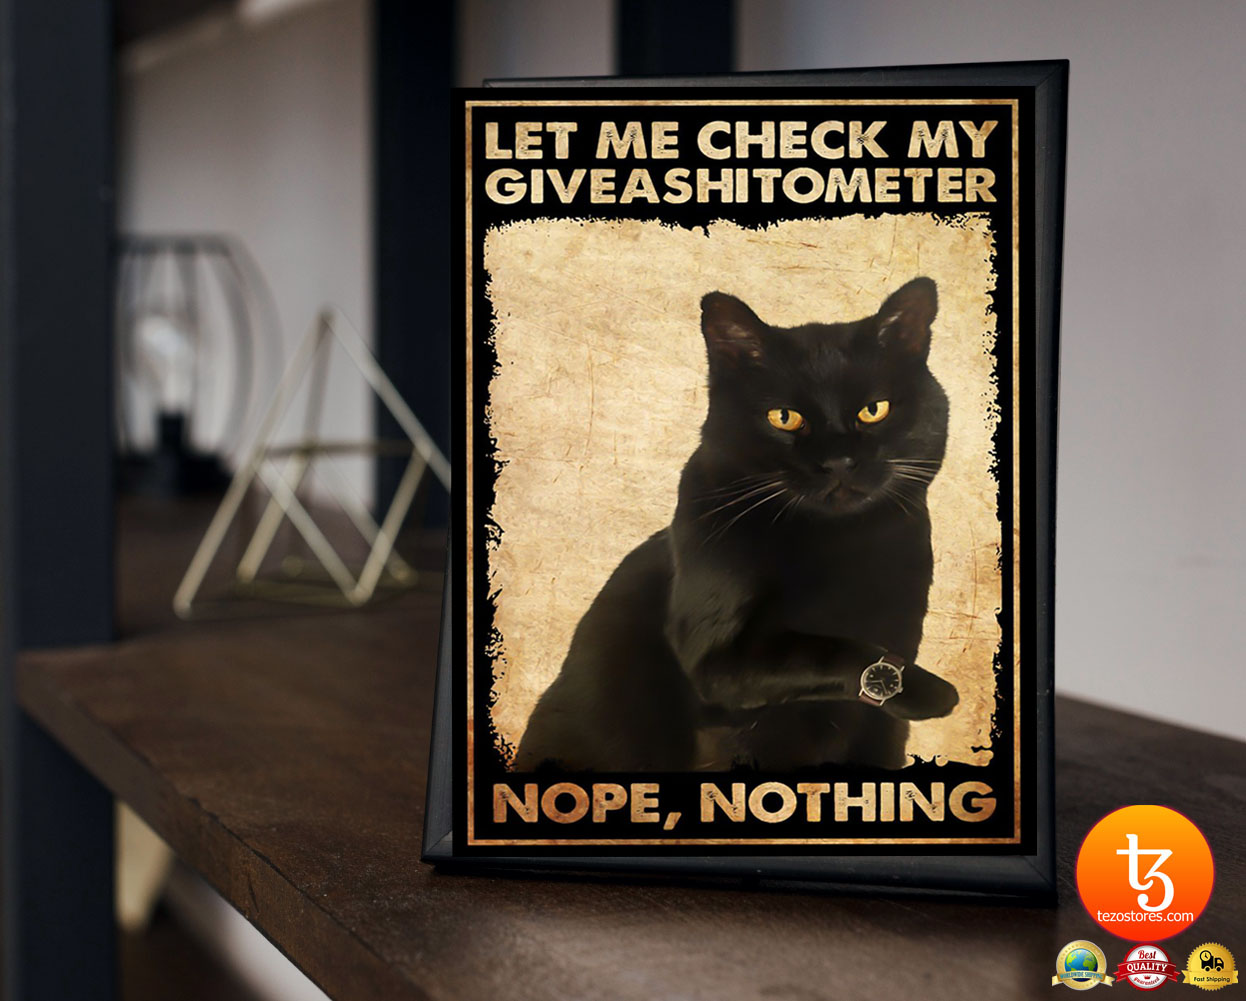 Let me check my giveashitometer nope nothing poster 3